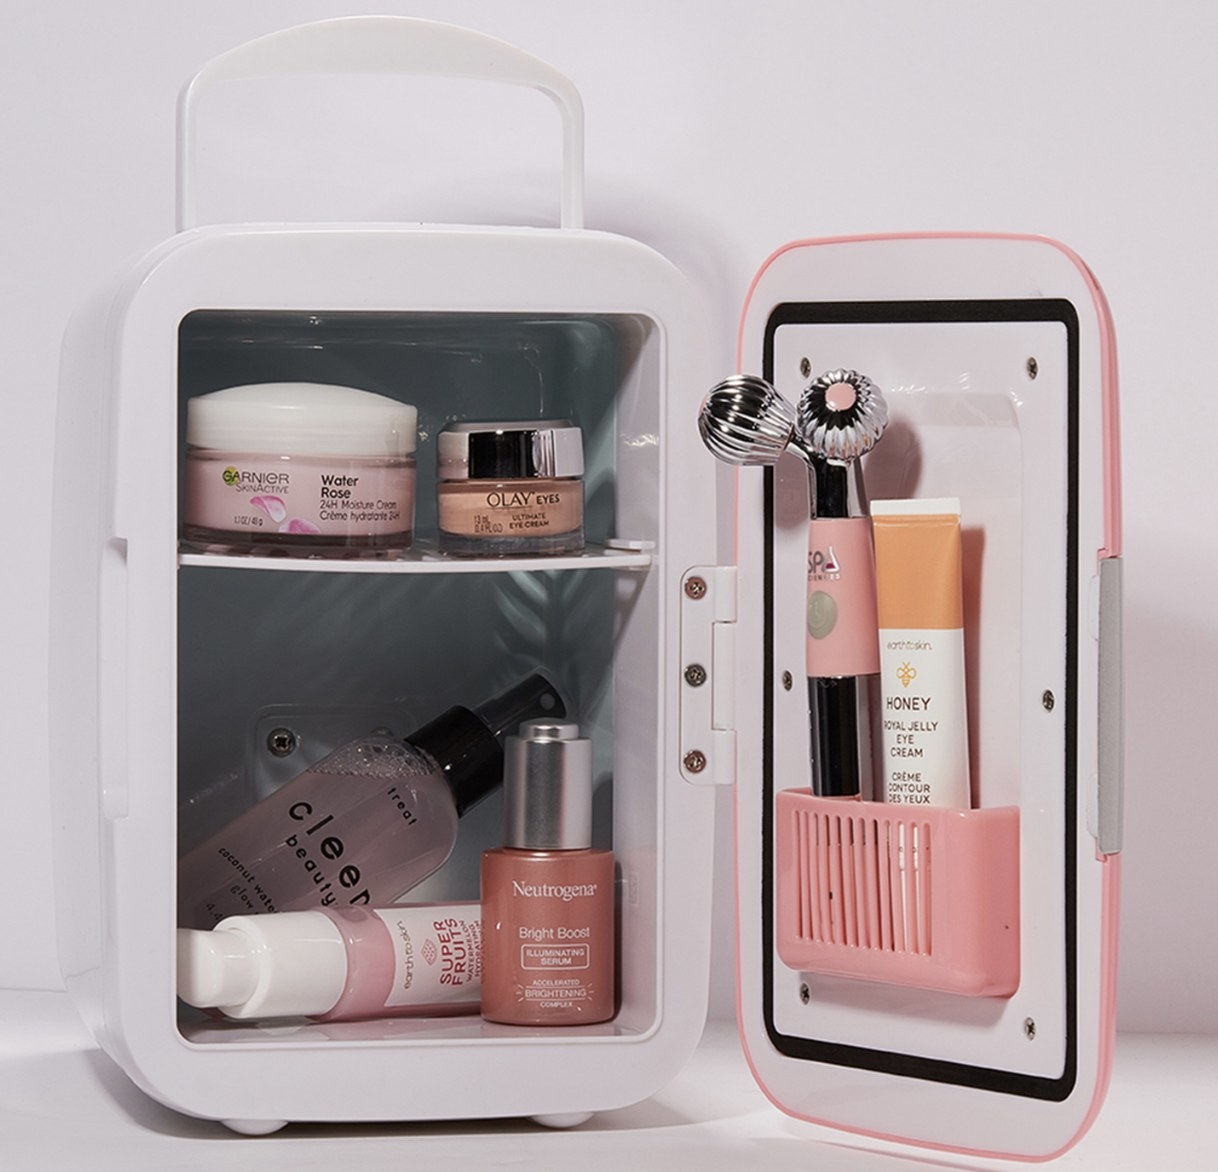 A pink mini fridge with skin care products inside